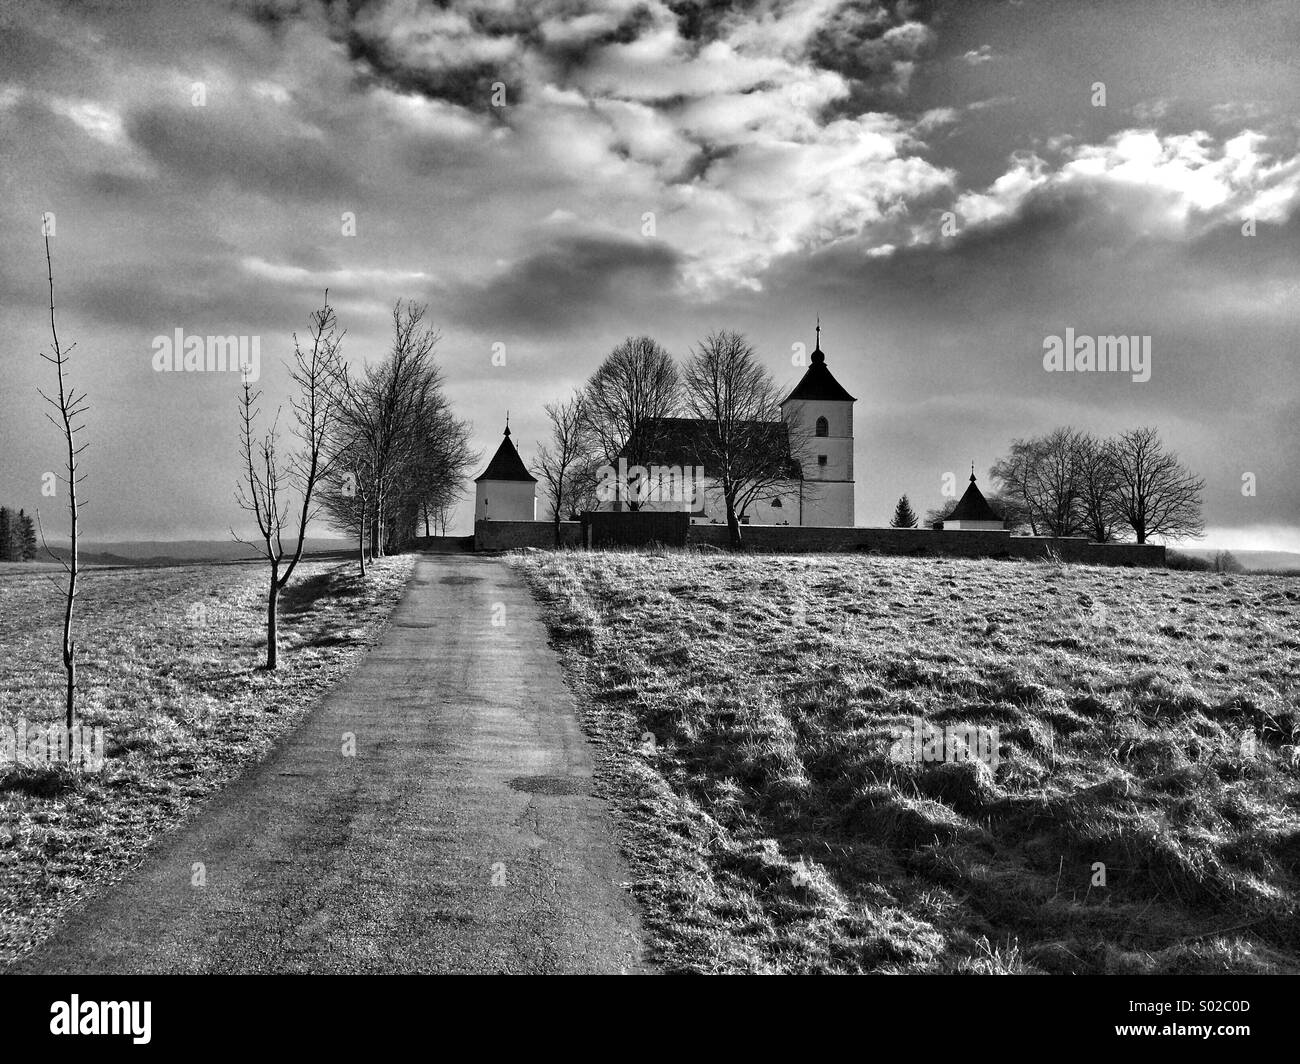 Holy Trinity Church in Vysoke Studnice,Czech Republic - Stock Image